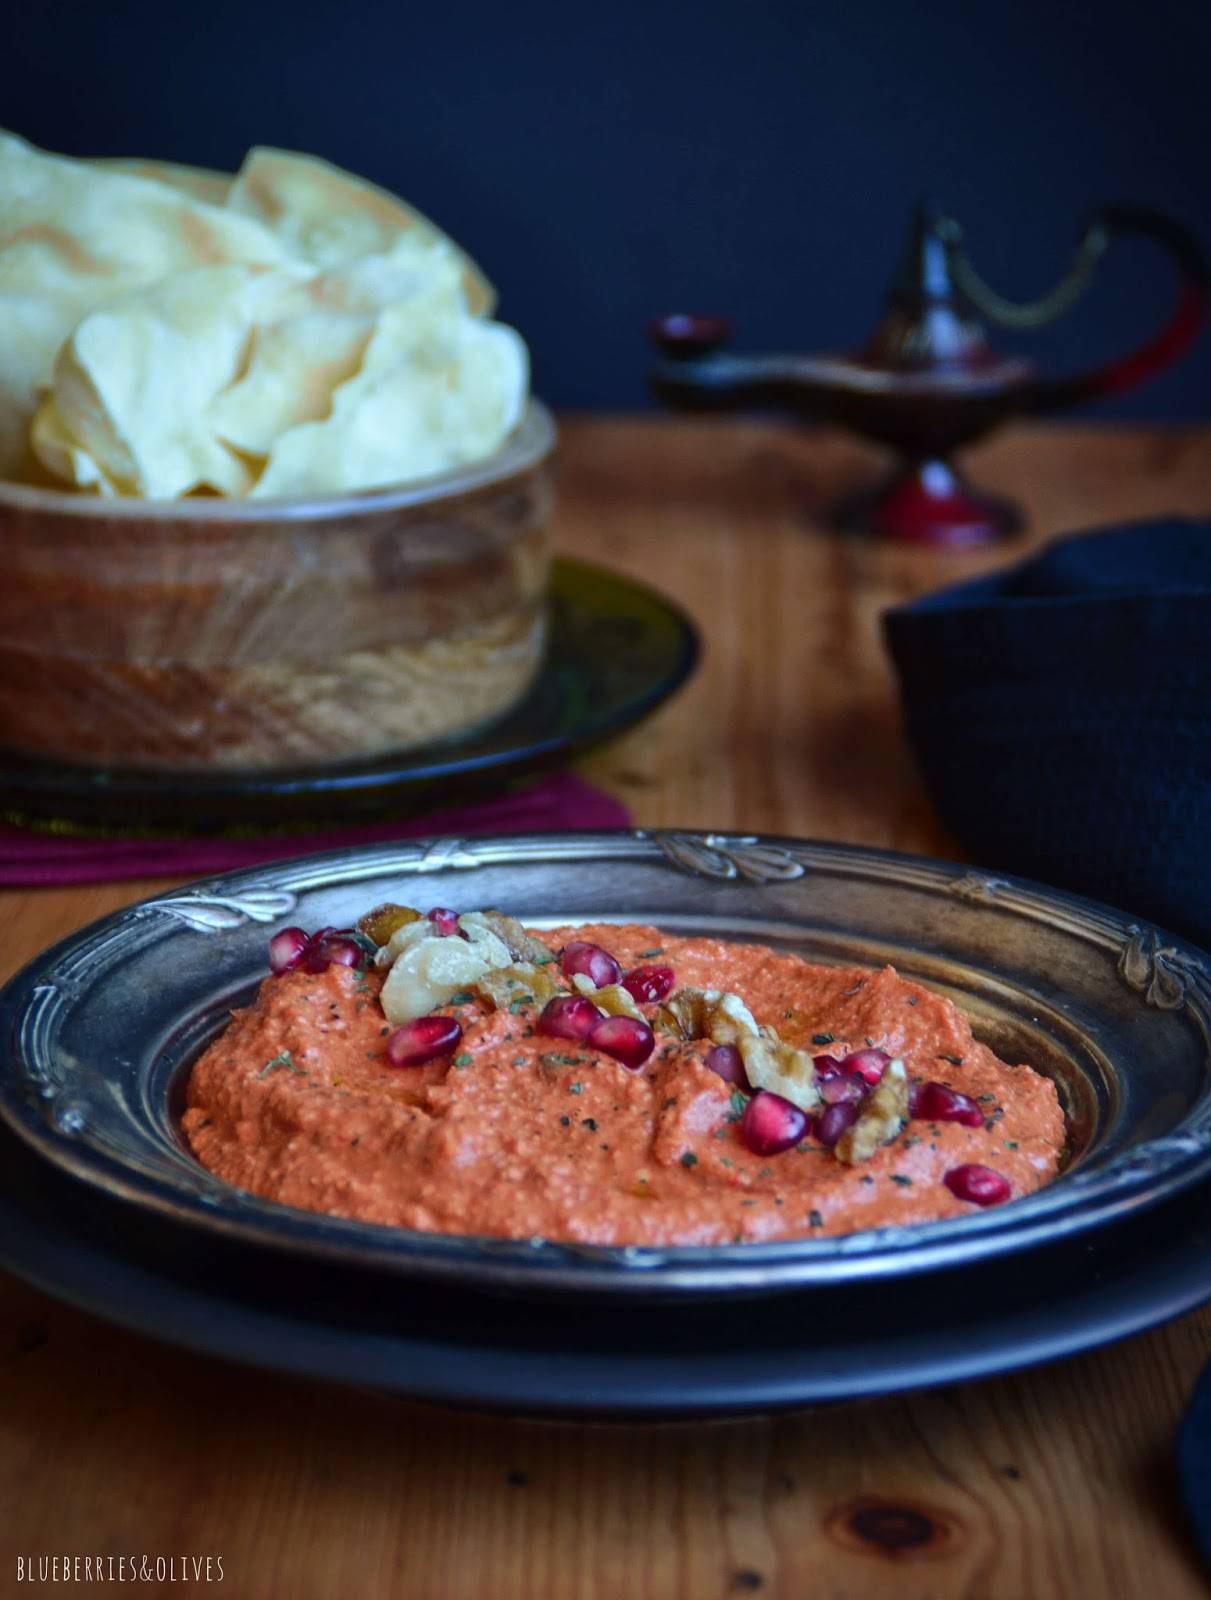 MUHAMMARA, SYRIAN DIP WITH PEPPERS AND WALNUTS